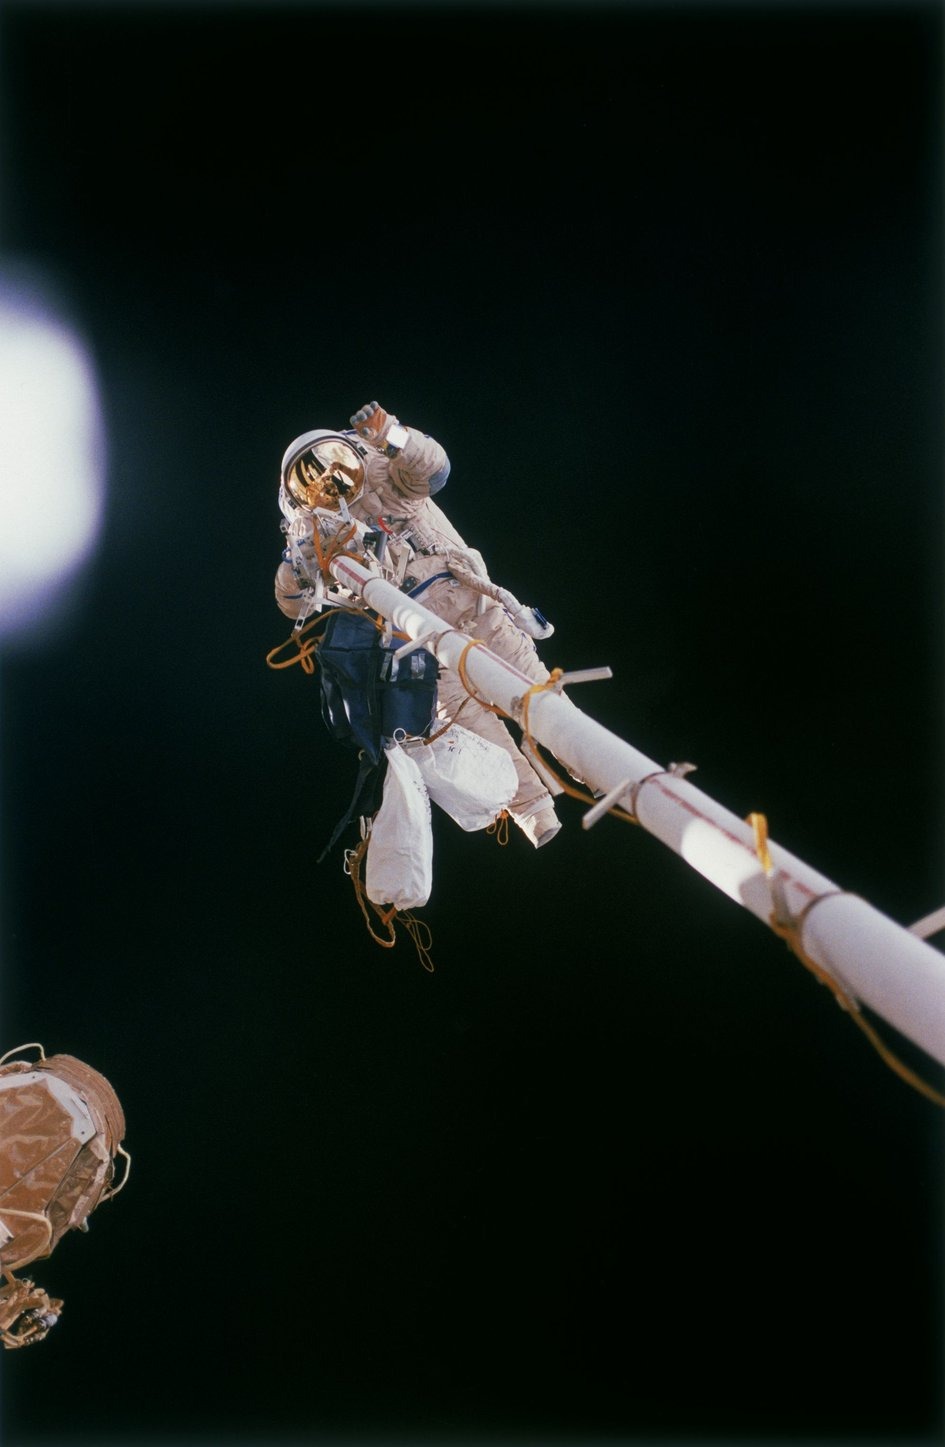 The first spacewalk for an ESA astronaut took place during Euromir 95